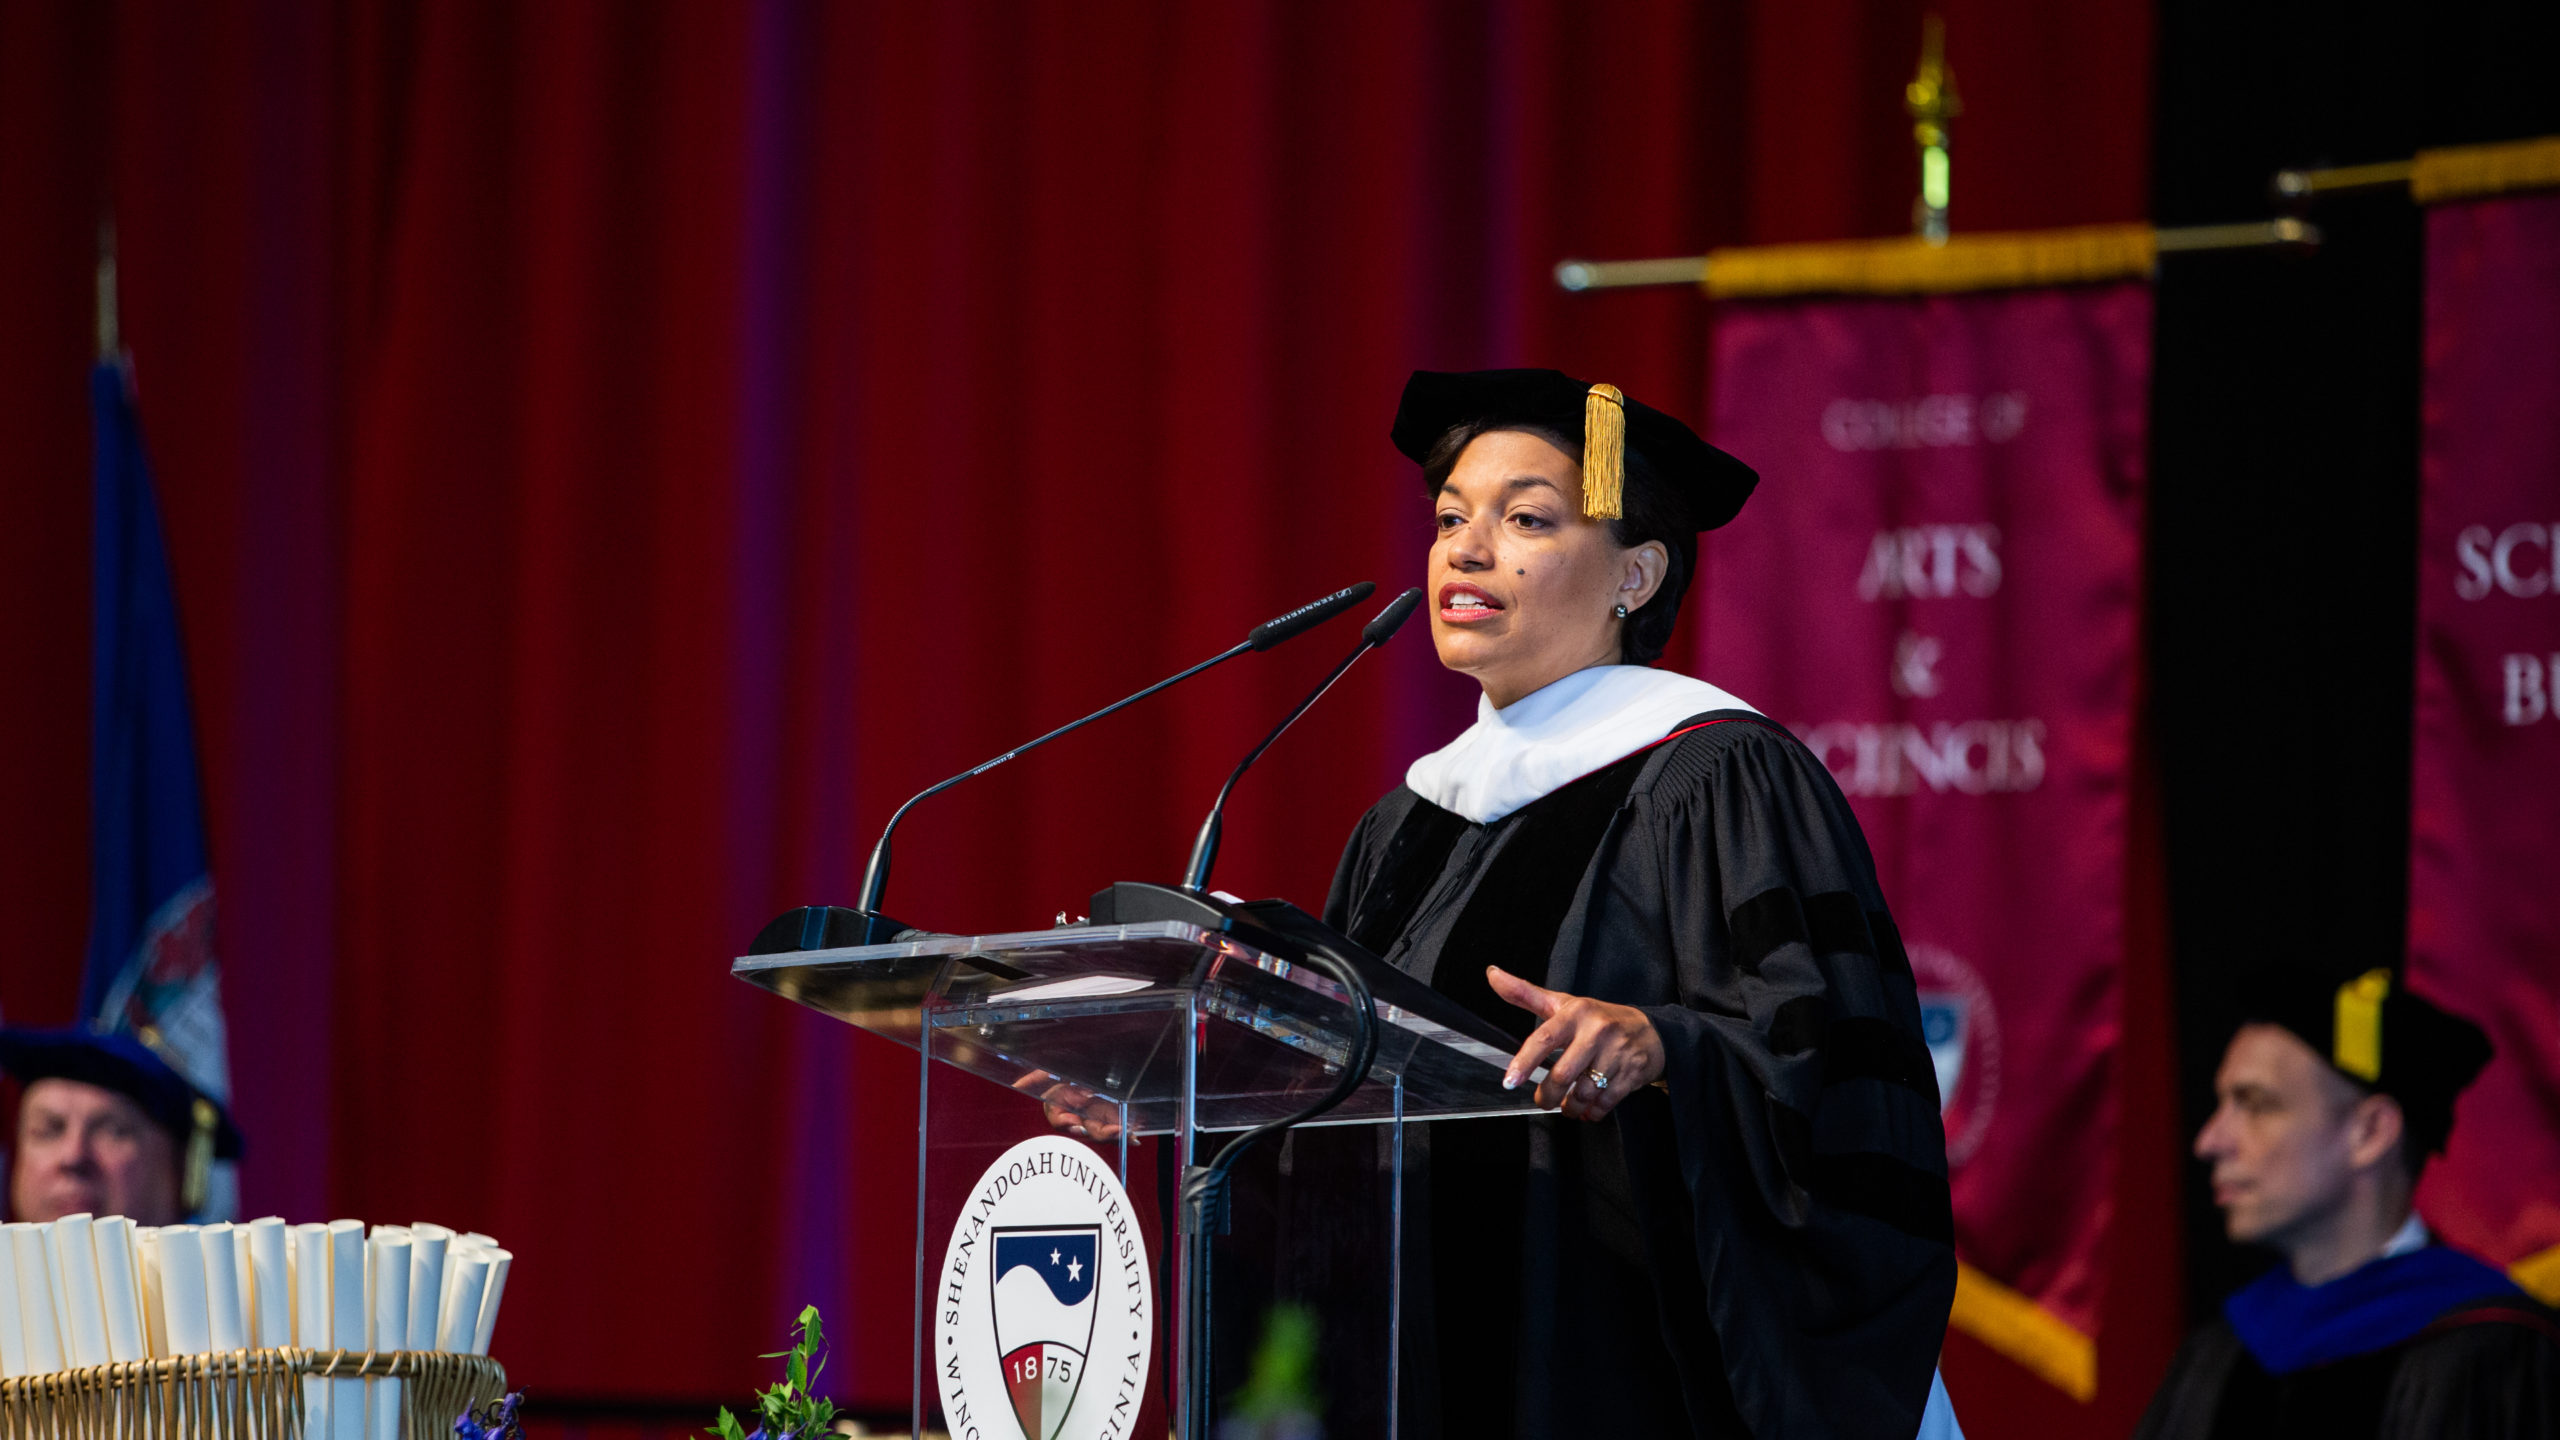 Bonnie St John speaking during Shenandoah University commencement address